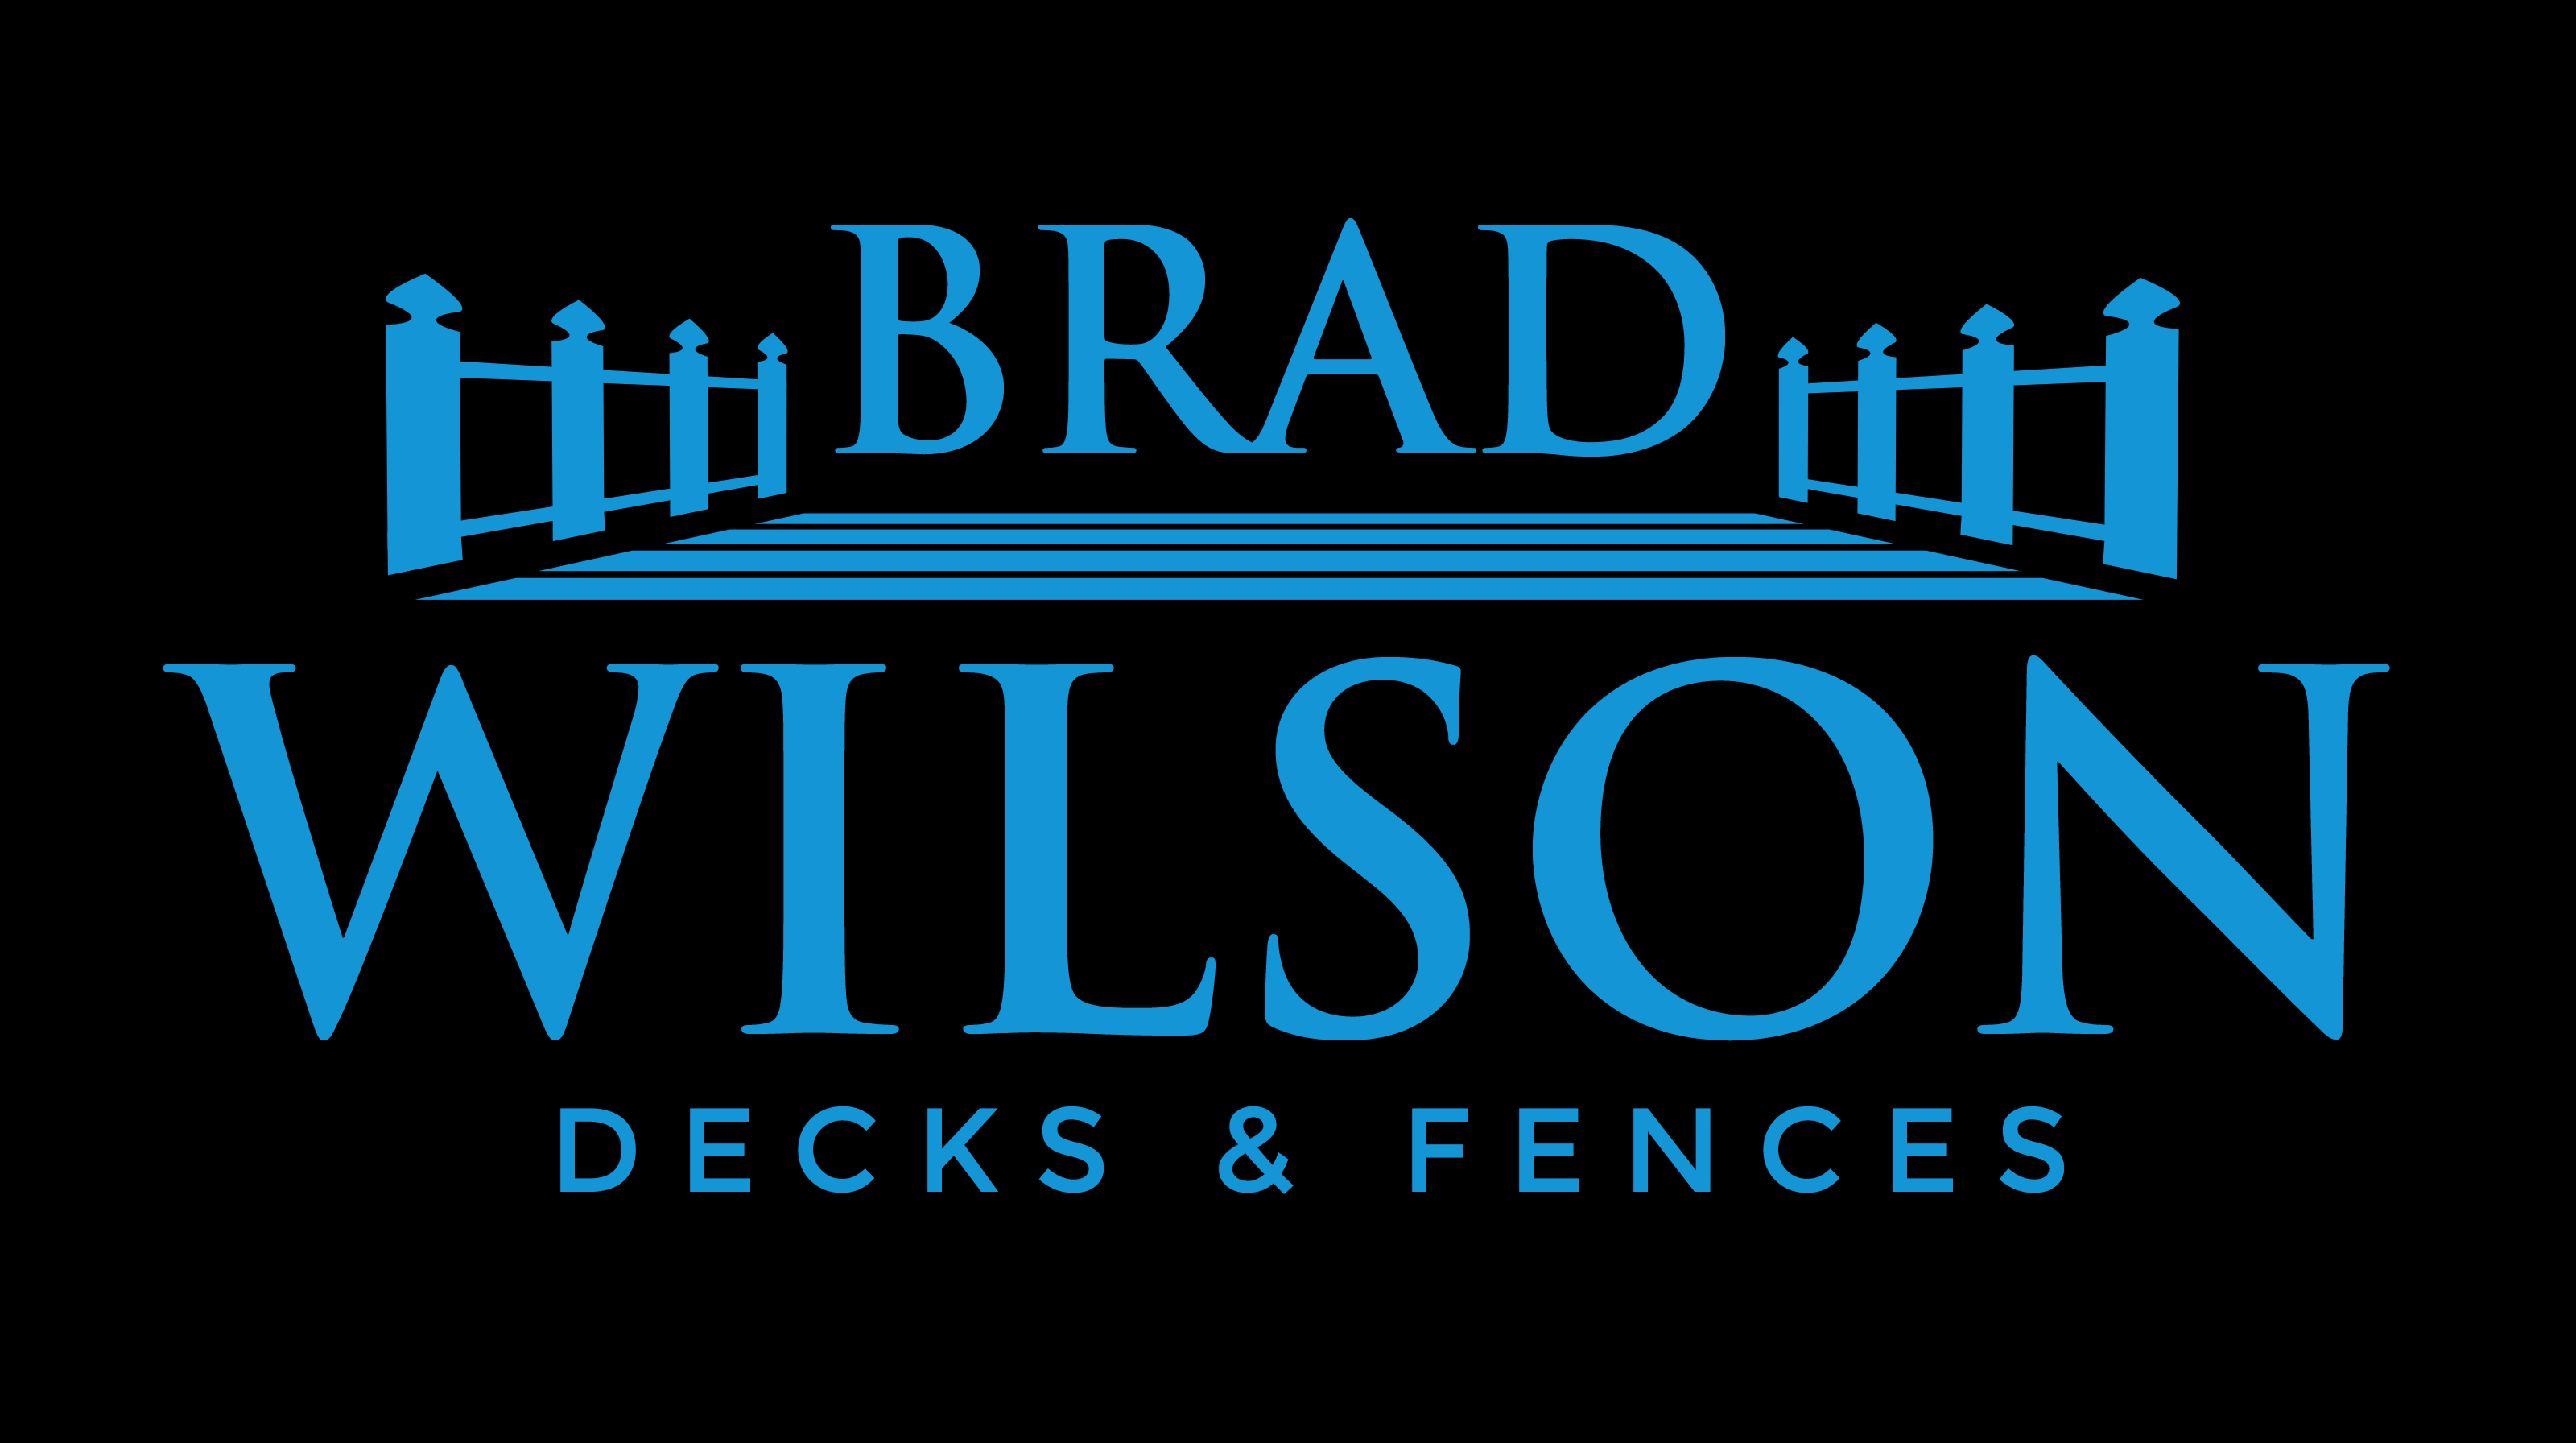 Brad Wilson Decks & Fences